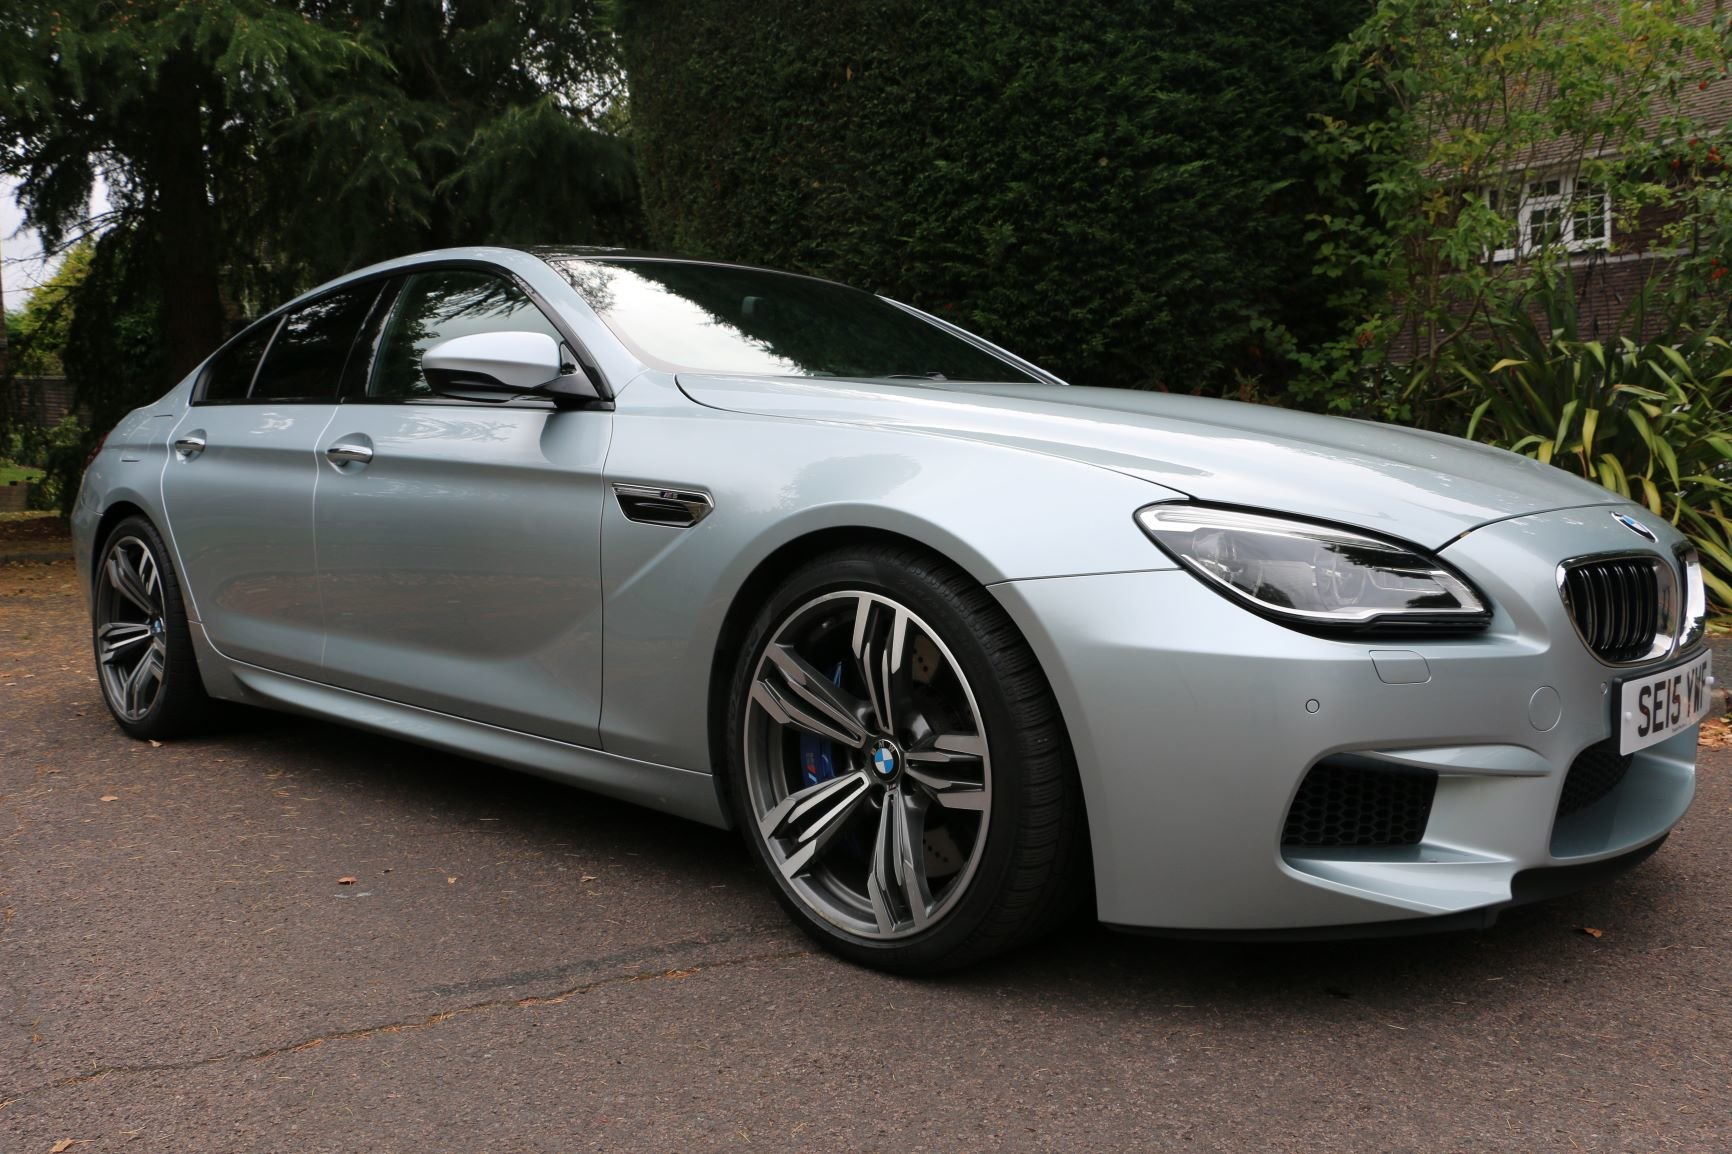 2015 BMW M6 Gran Coupe  For Sale (picture 2 of 6)